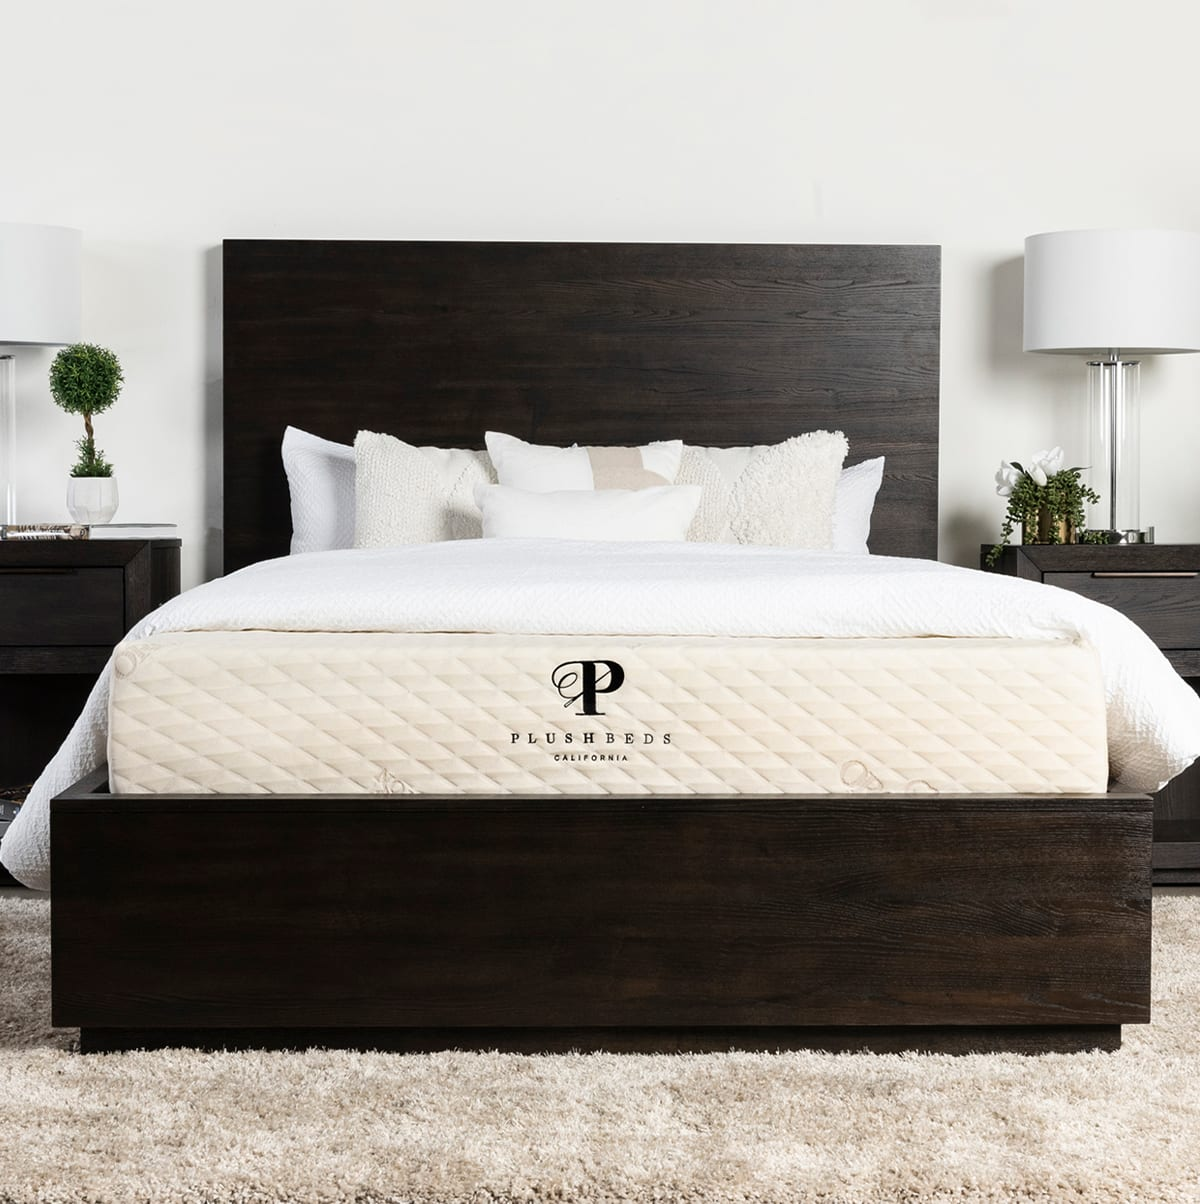 Plushbeds Natural Bliss Mattress Review Breakdown